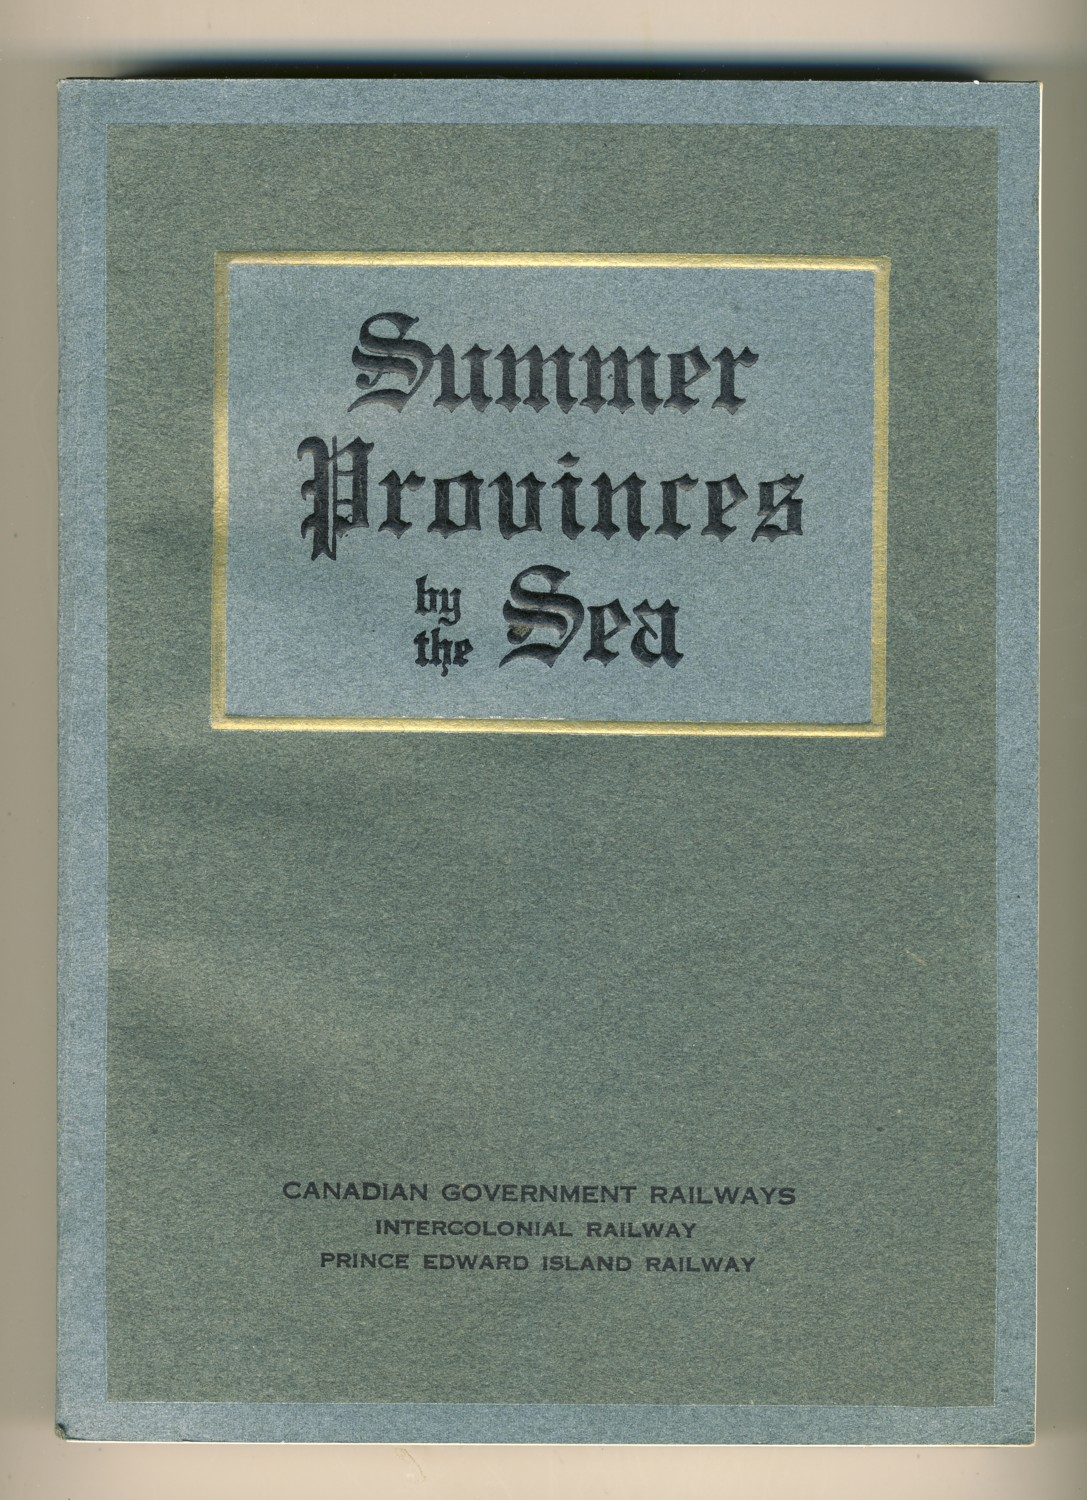 Image for Summer Provinces by the Sea: A Description of the Vacation Resources of Eastern Quebec and the  Maritime Provinces of Canada  in the territory served  by the Canadian Government Railways: -  Intercolonial  Railway, Prince Edward Island Railway